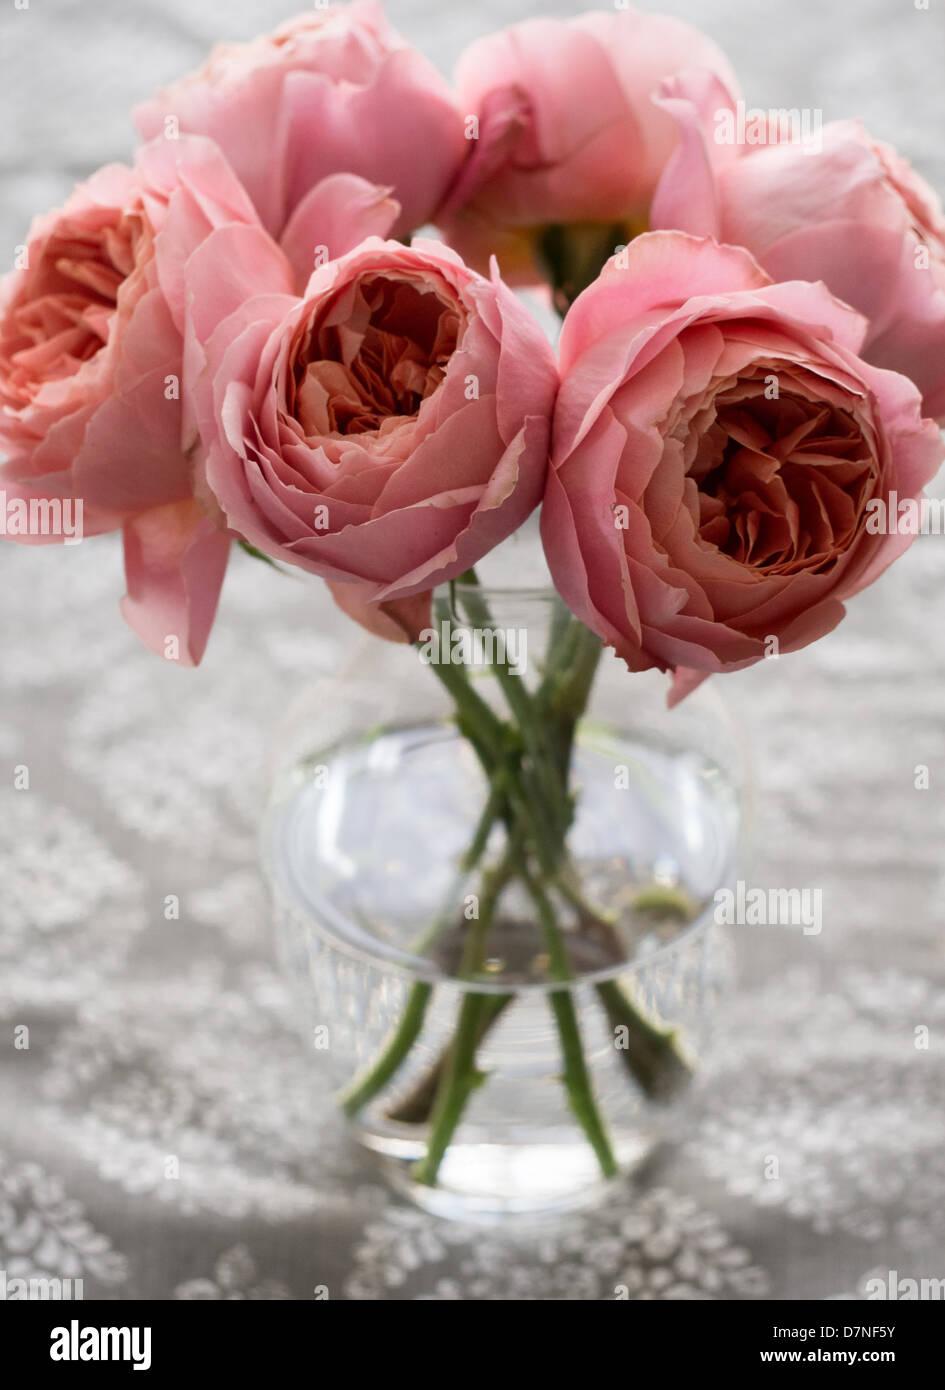 Pink peonies in a vase - Stock Image